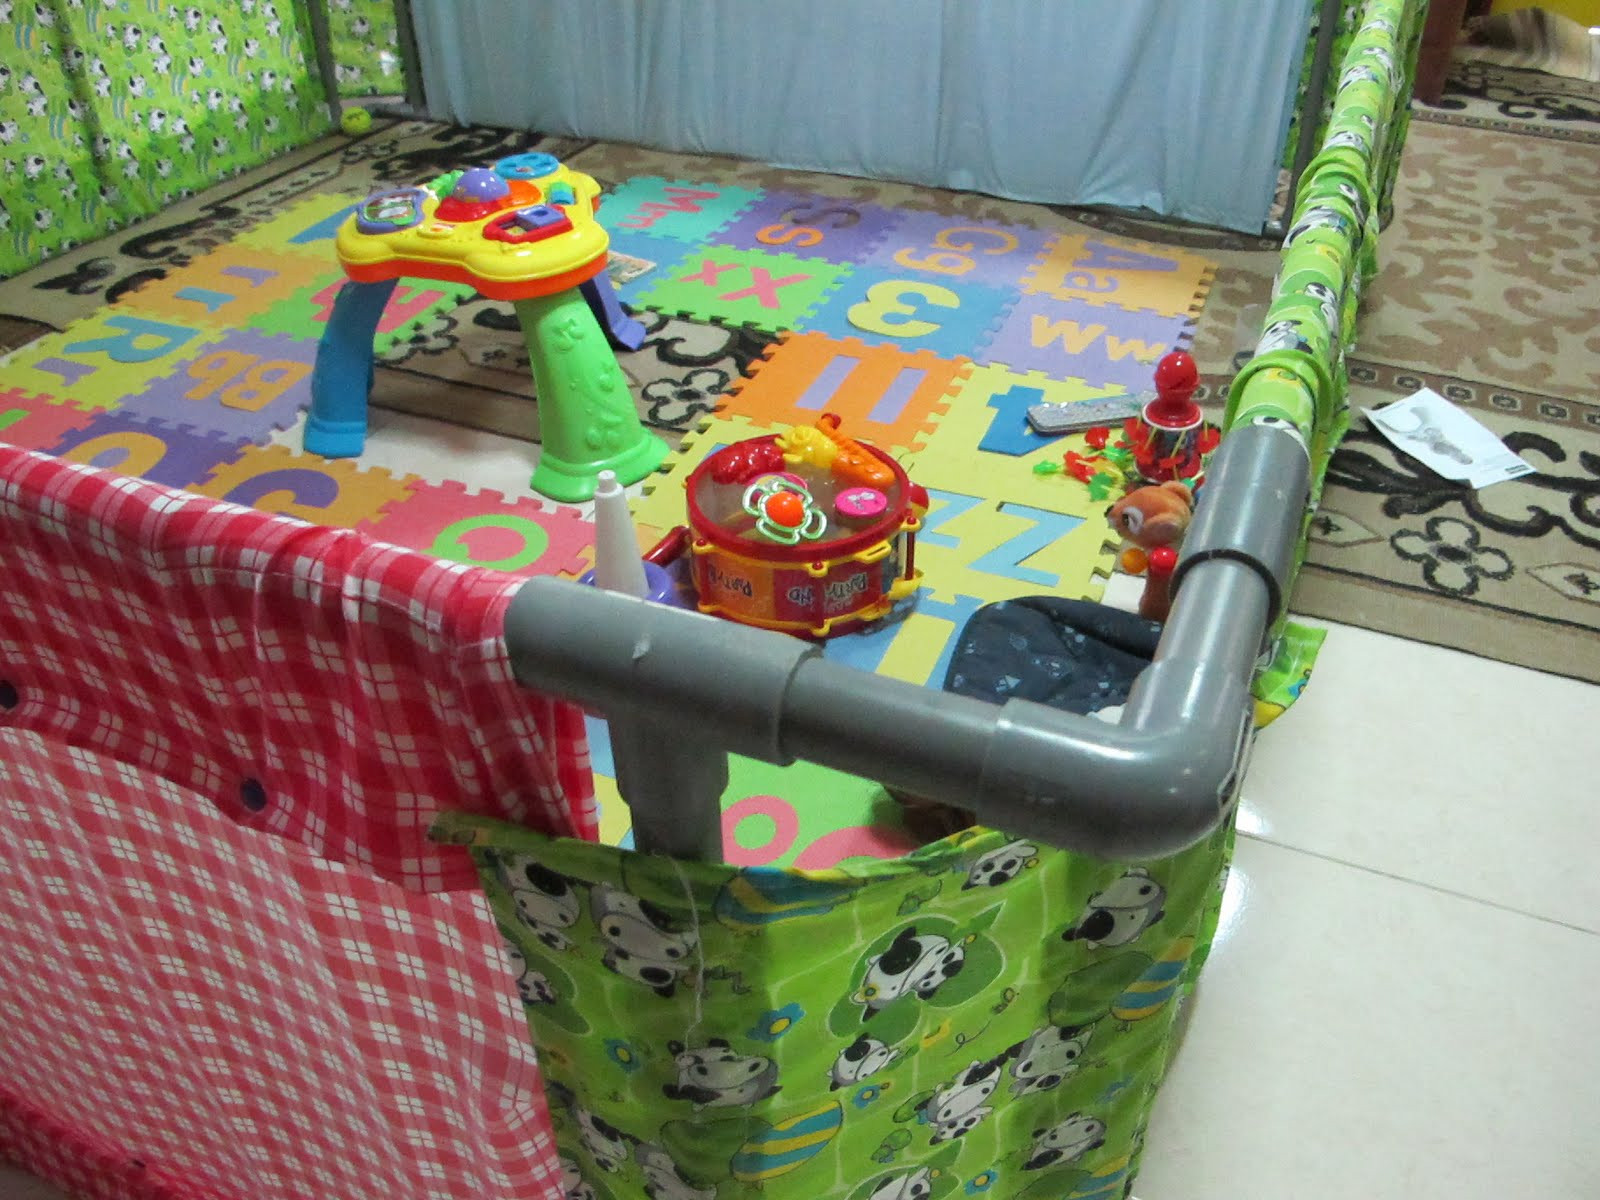 Best ideas about DIY Baby Playpen . Save or Pin Rabbit The Penguin Playpen for the little man Now.